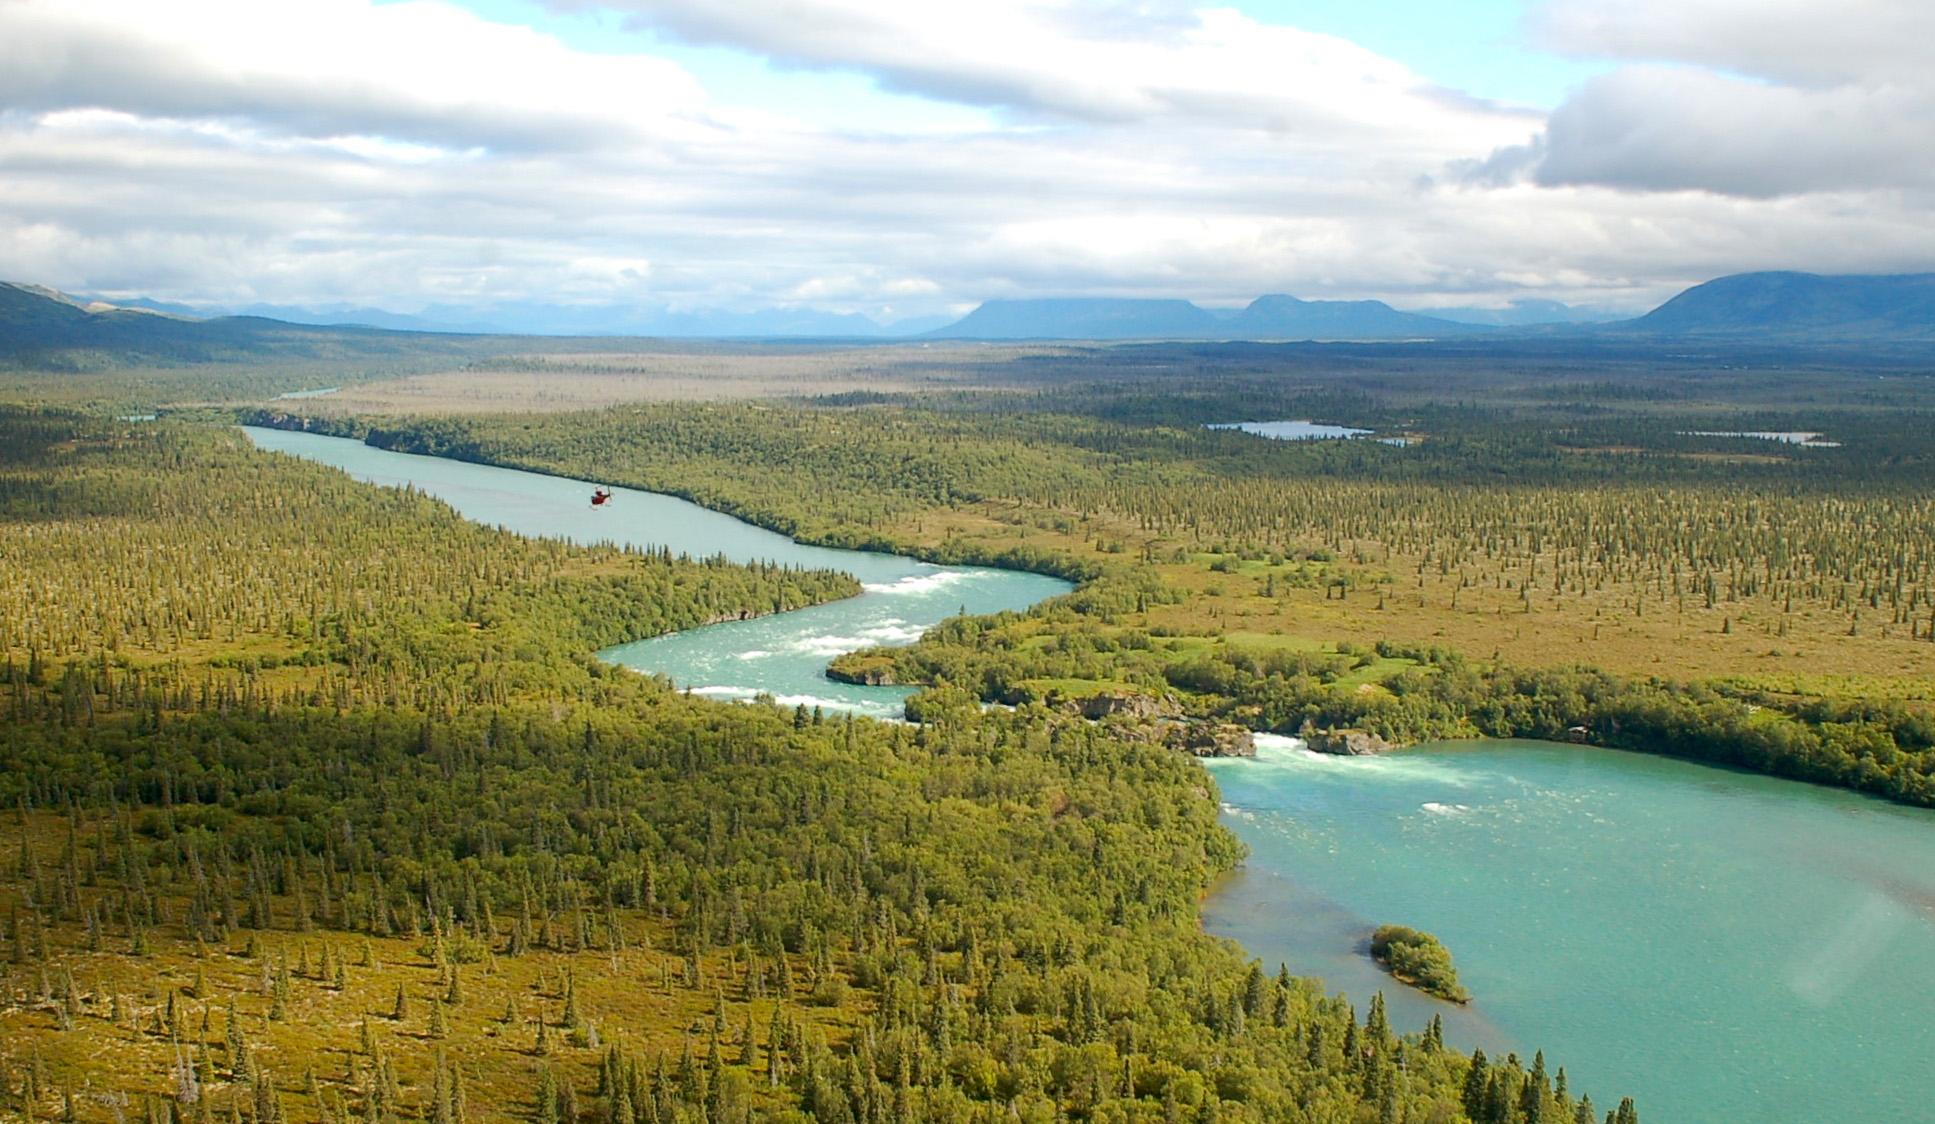 The Newhalen River runs within a few miles of the Pebble Mine site near Lake Clark National Park and Preserve.